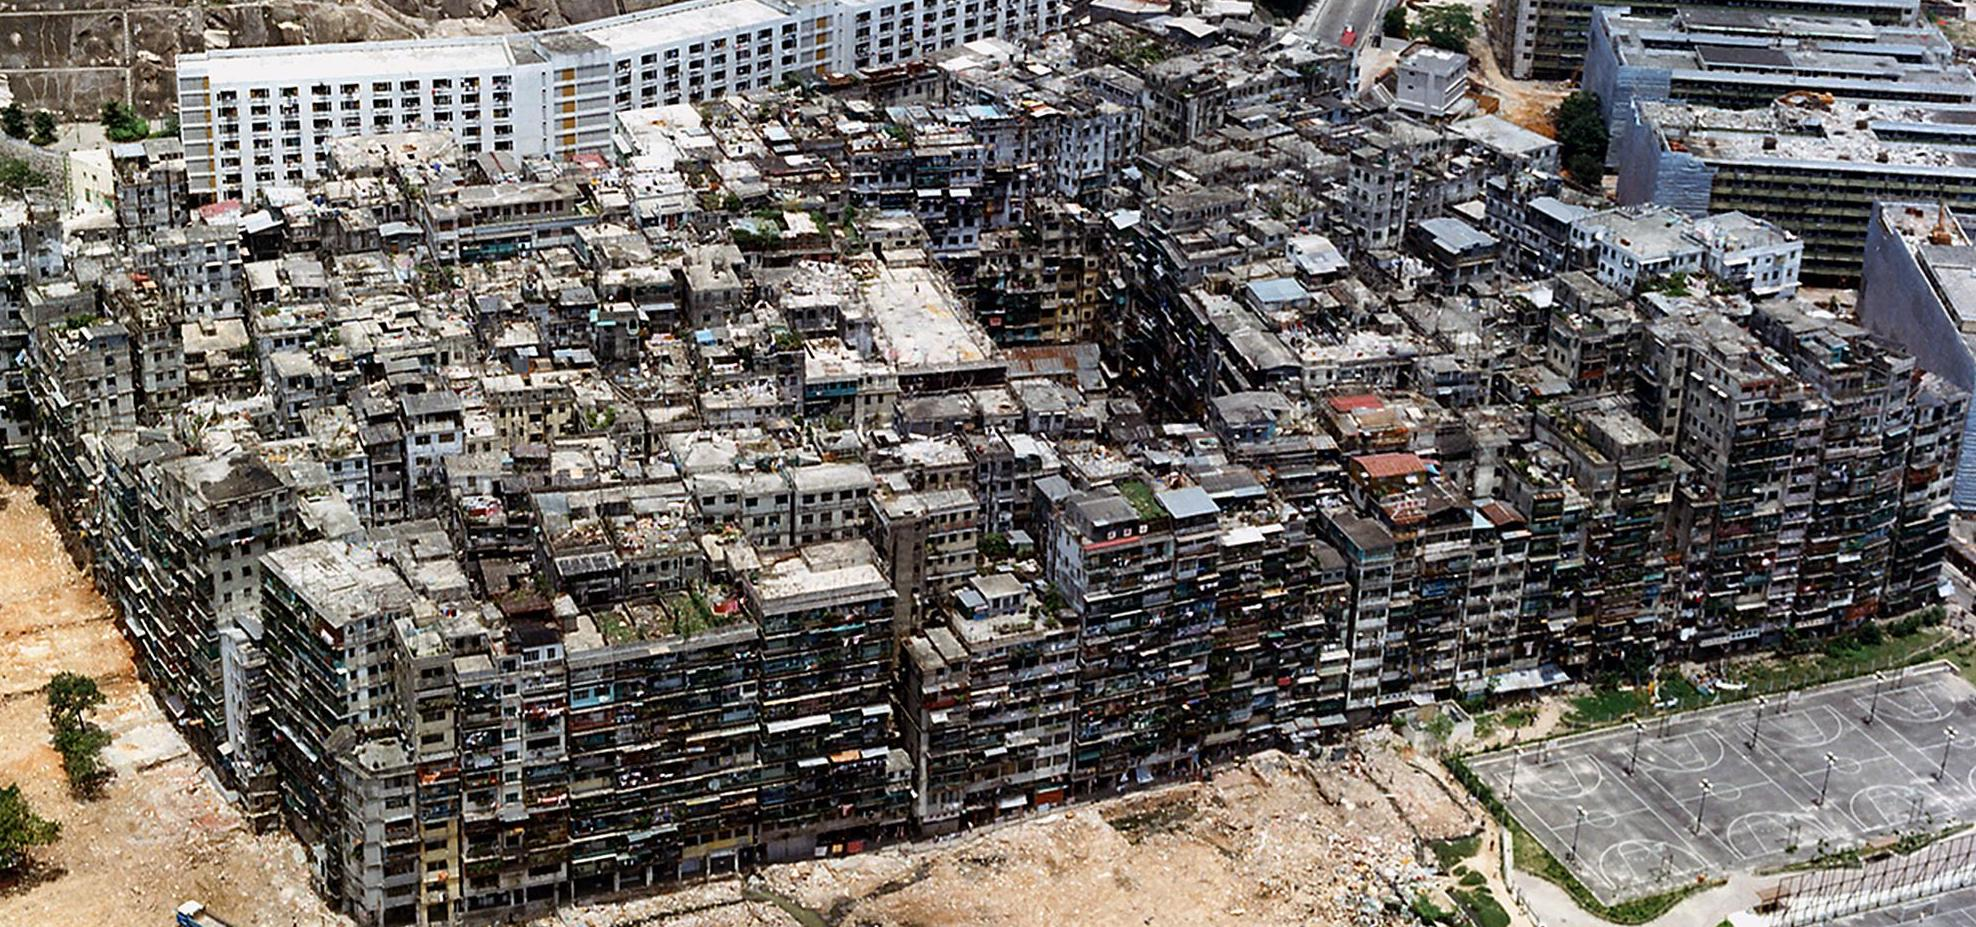 Ep. 229   The Walled City of Kowloon